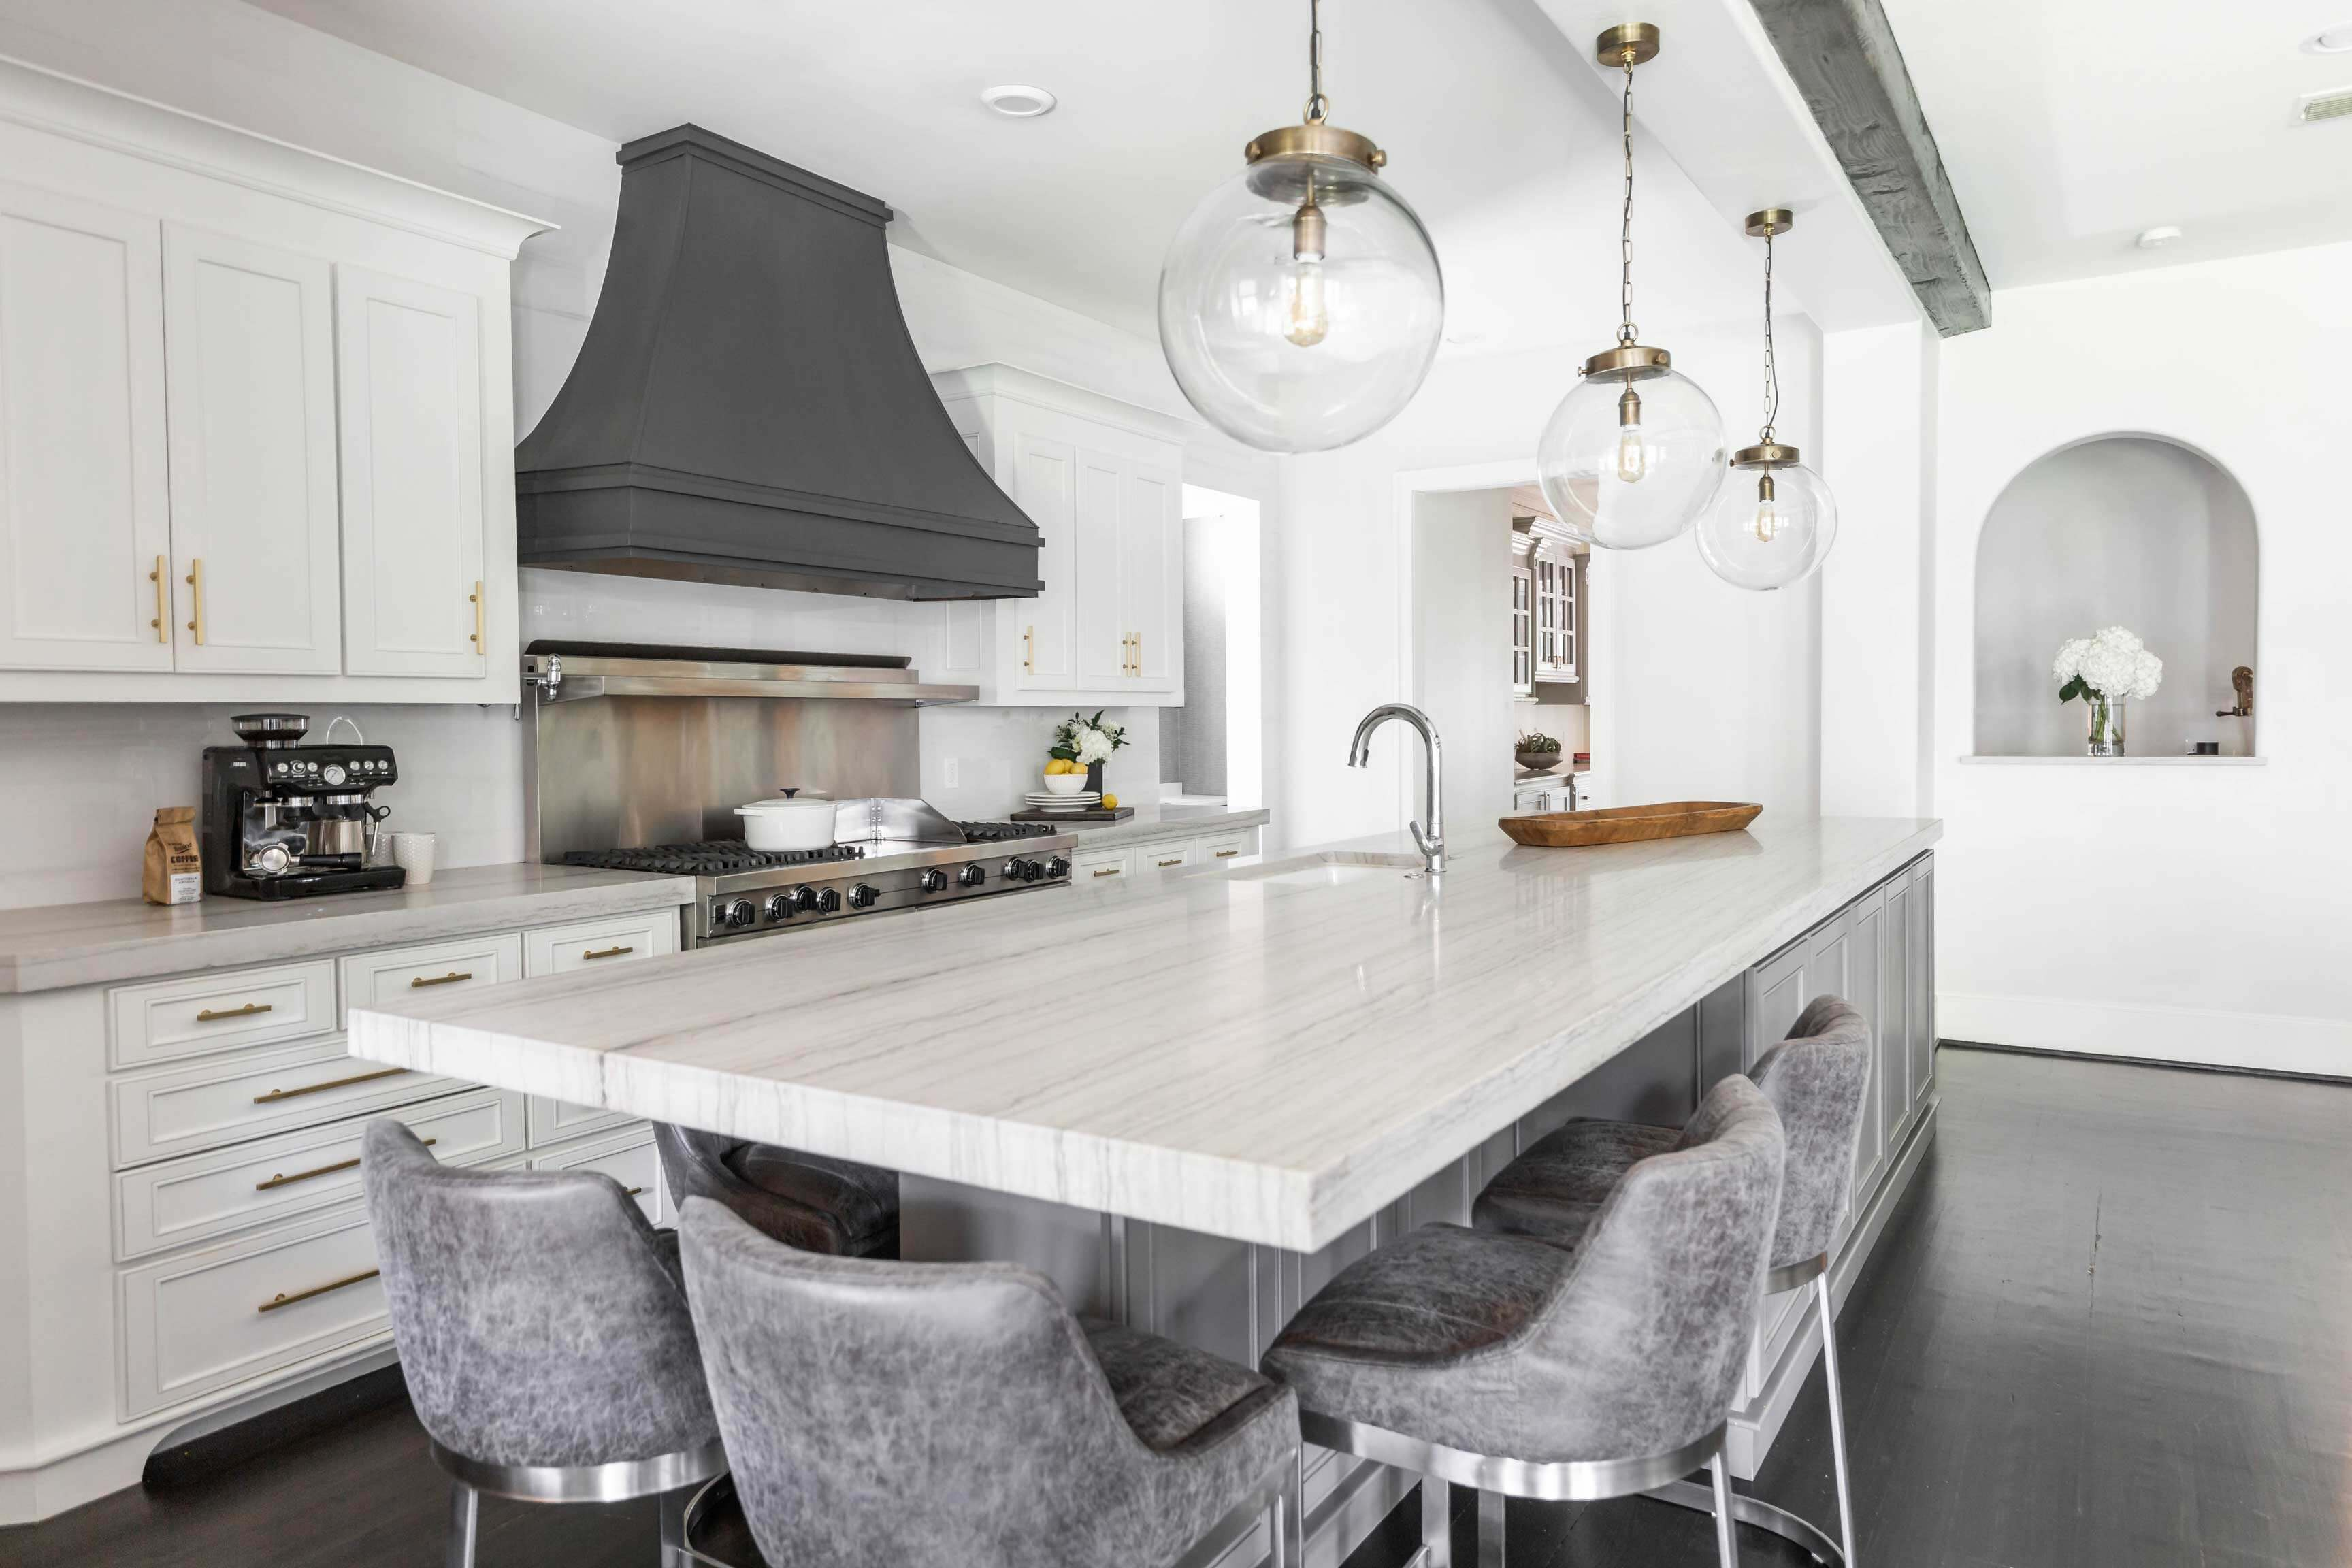 Design Your Ideal Kitchen Island With Seating And Storage Michelle Lynne Interiors Group